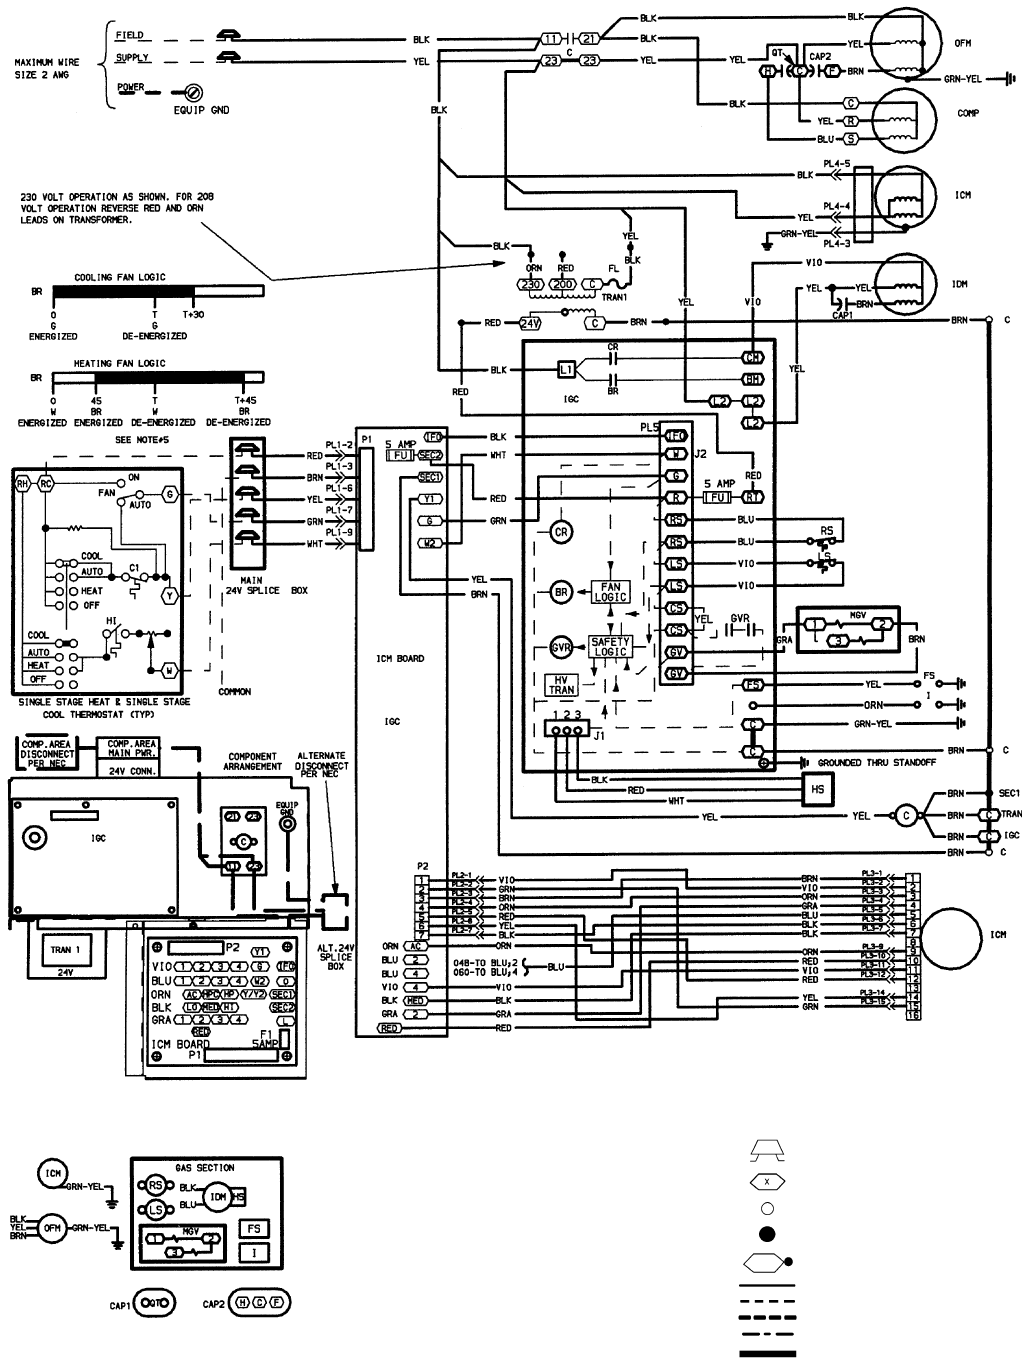 220 volt electric motor wiring diagrams